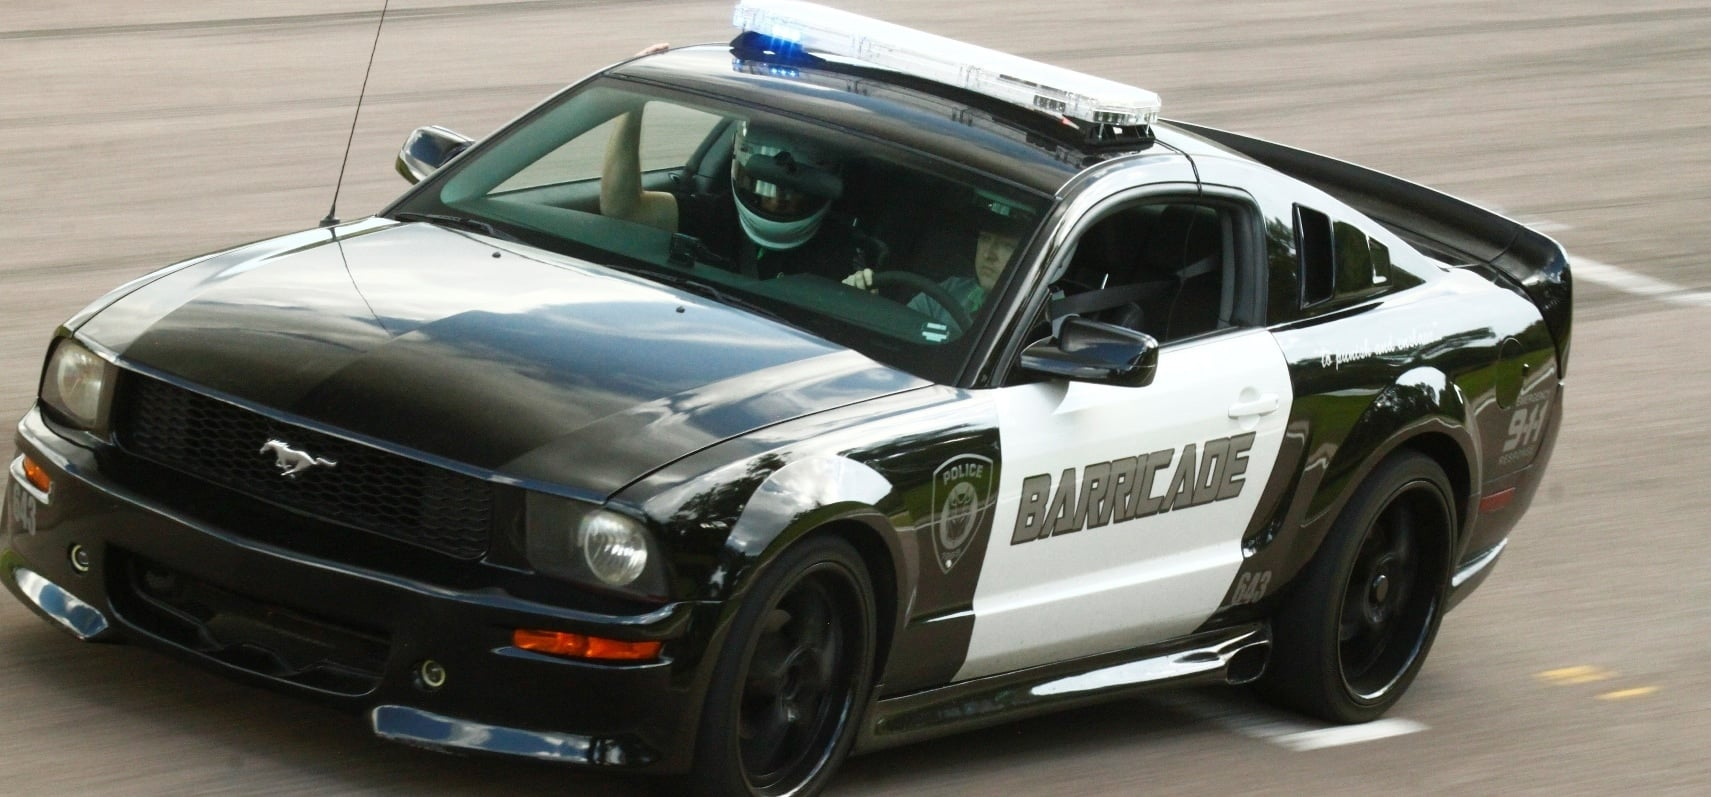 'Barricade' Mustang GT Experience-6